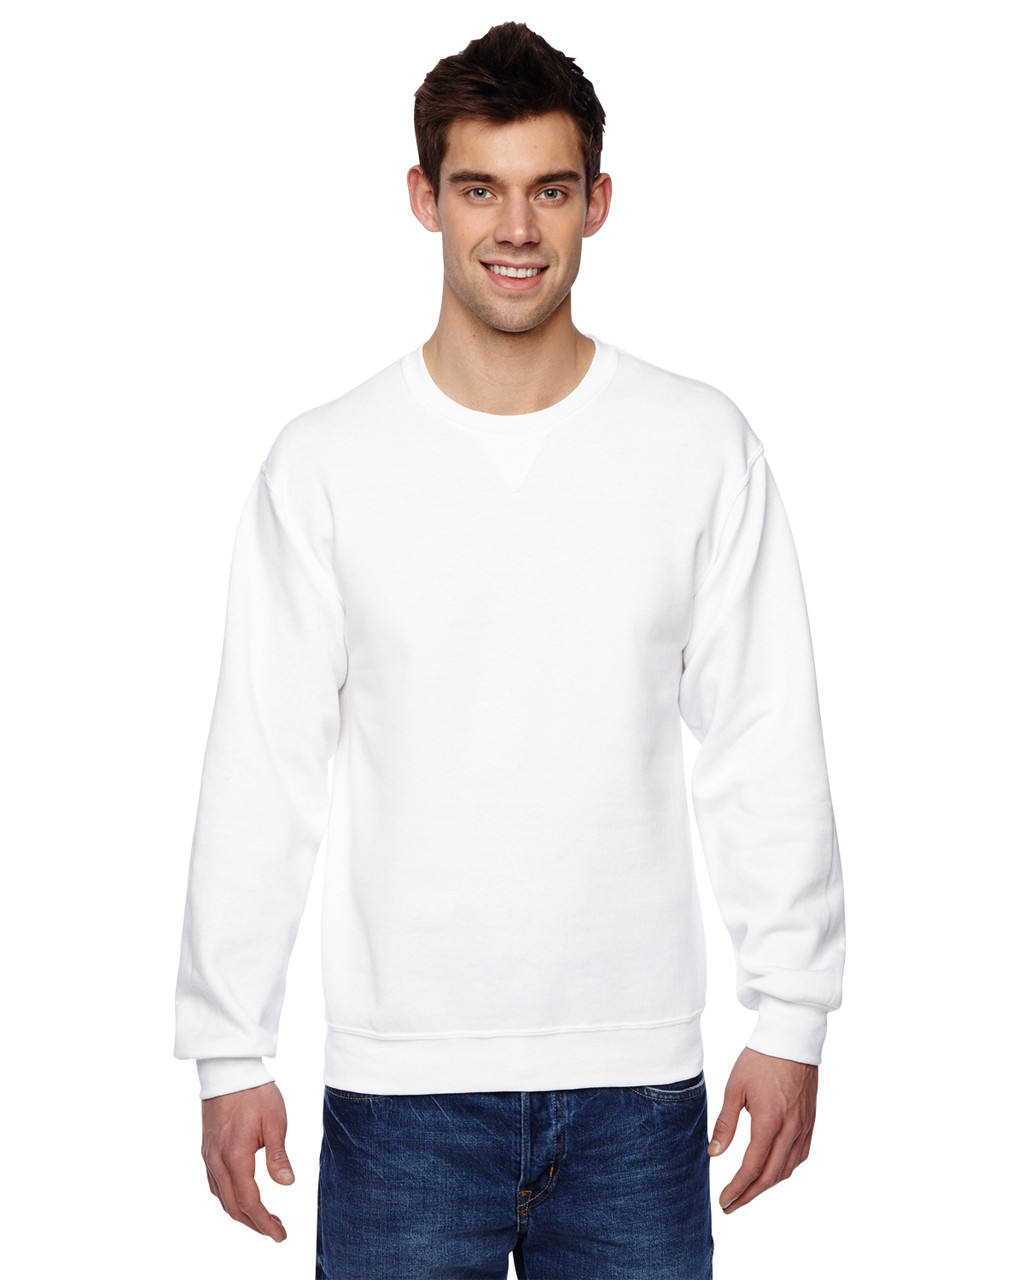 White - SF72R Fruit of the Loom Sofspun® Crewneck Sweatshirt  | Blankclothing.ca